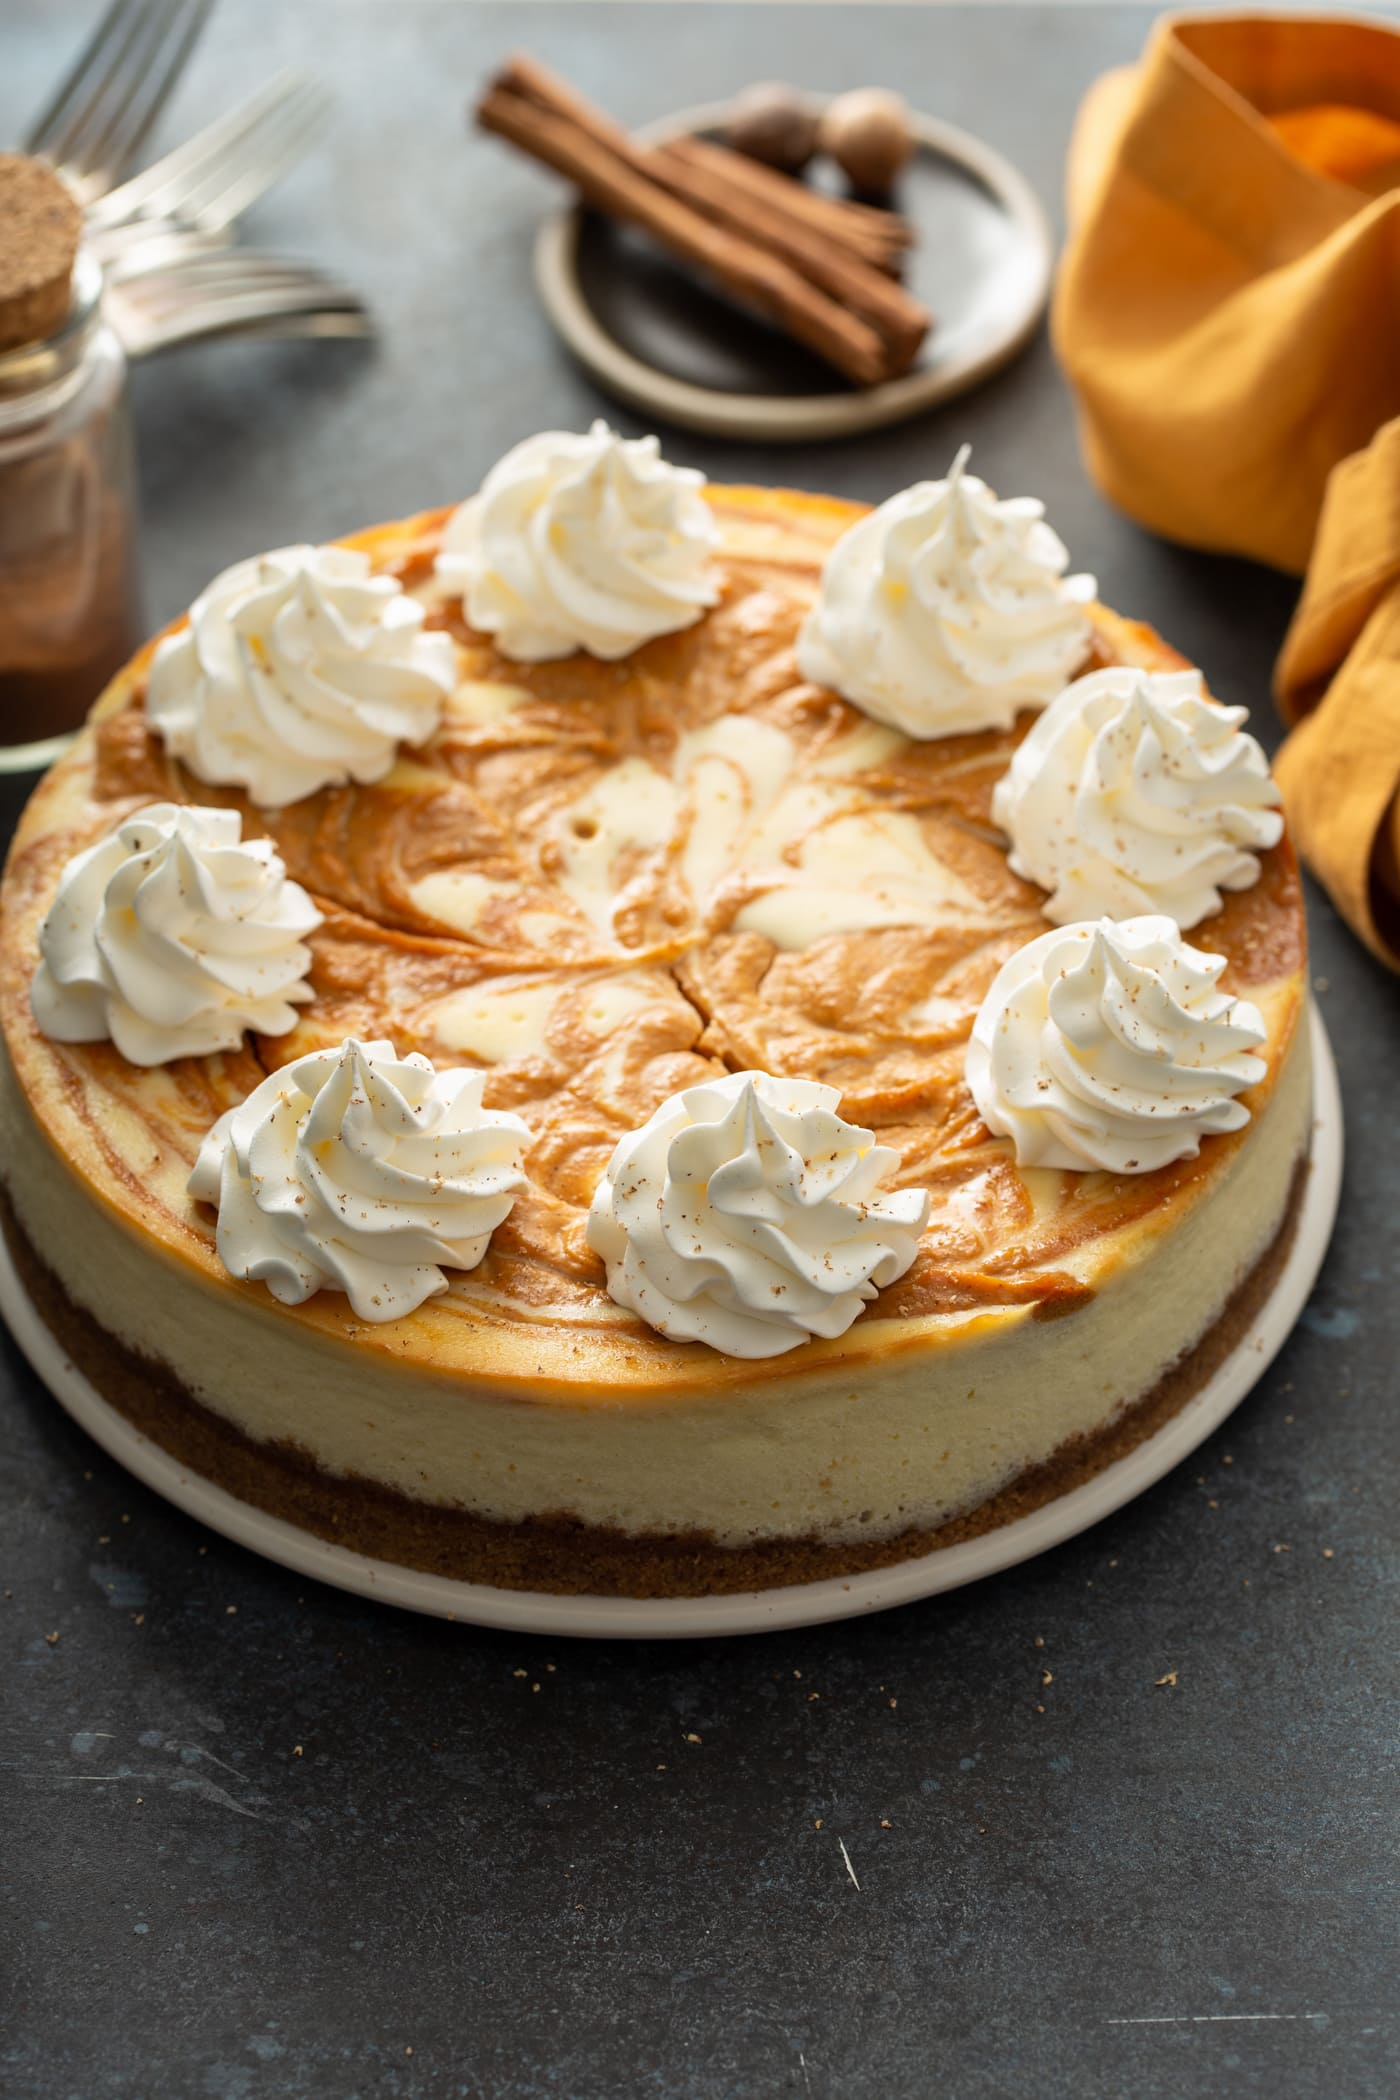 A whole swirled pumpkin cheesecake topped with dollops of whipped cream. There is a napkin, cinnamon sticks and whole nutmeg in the background.